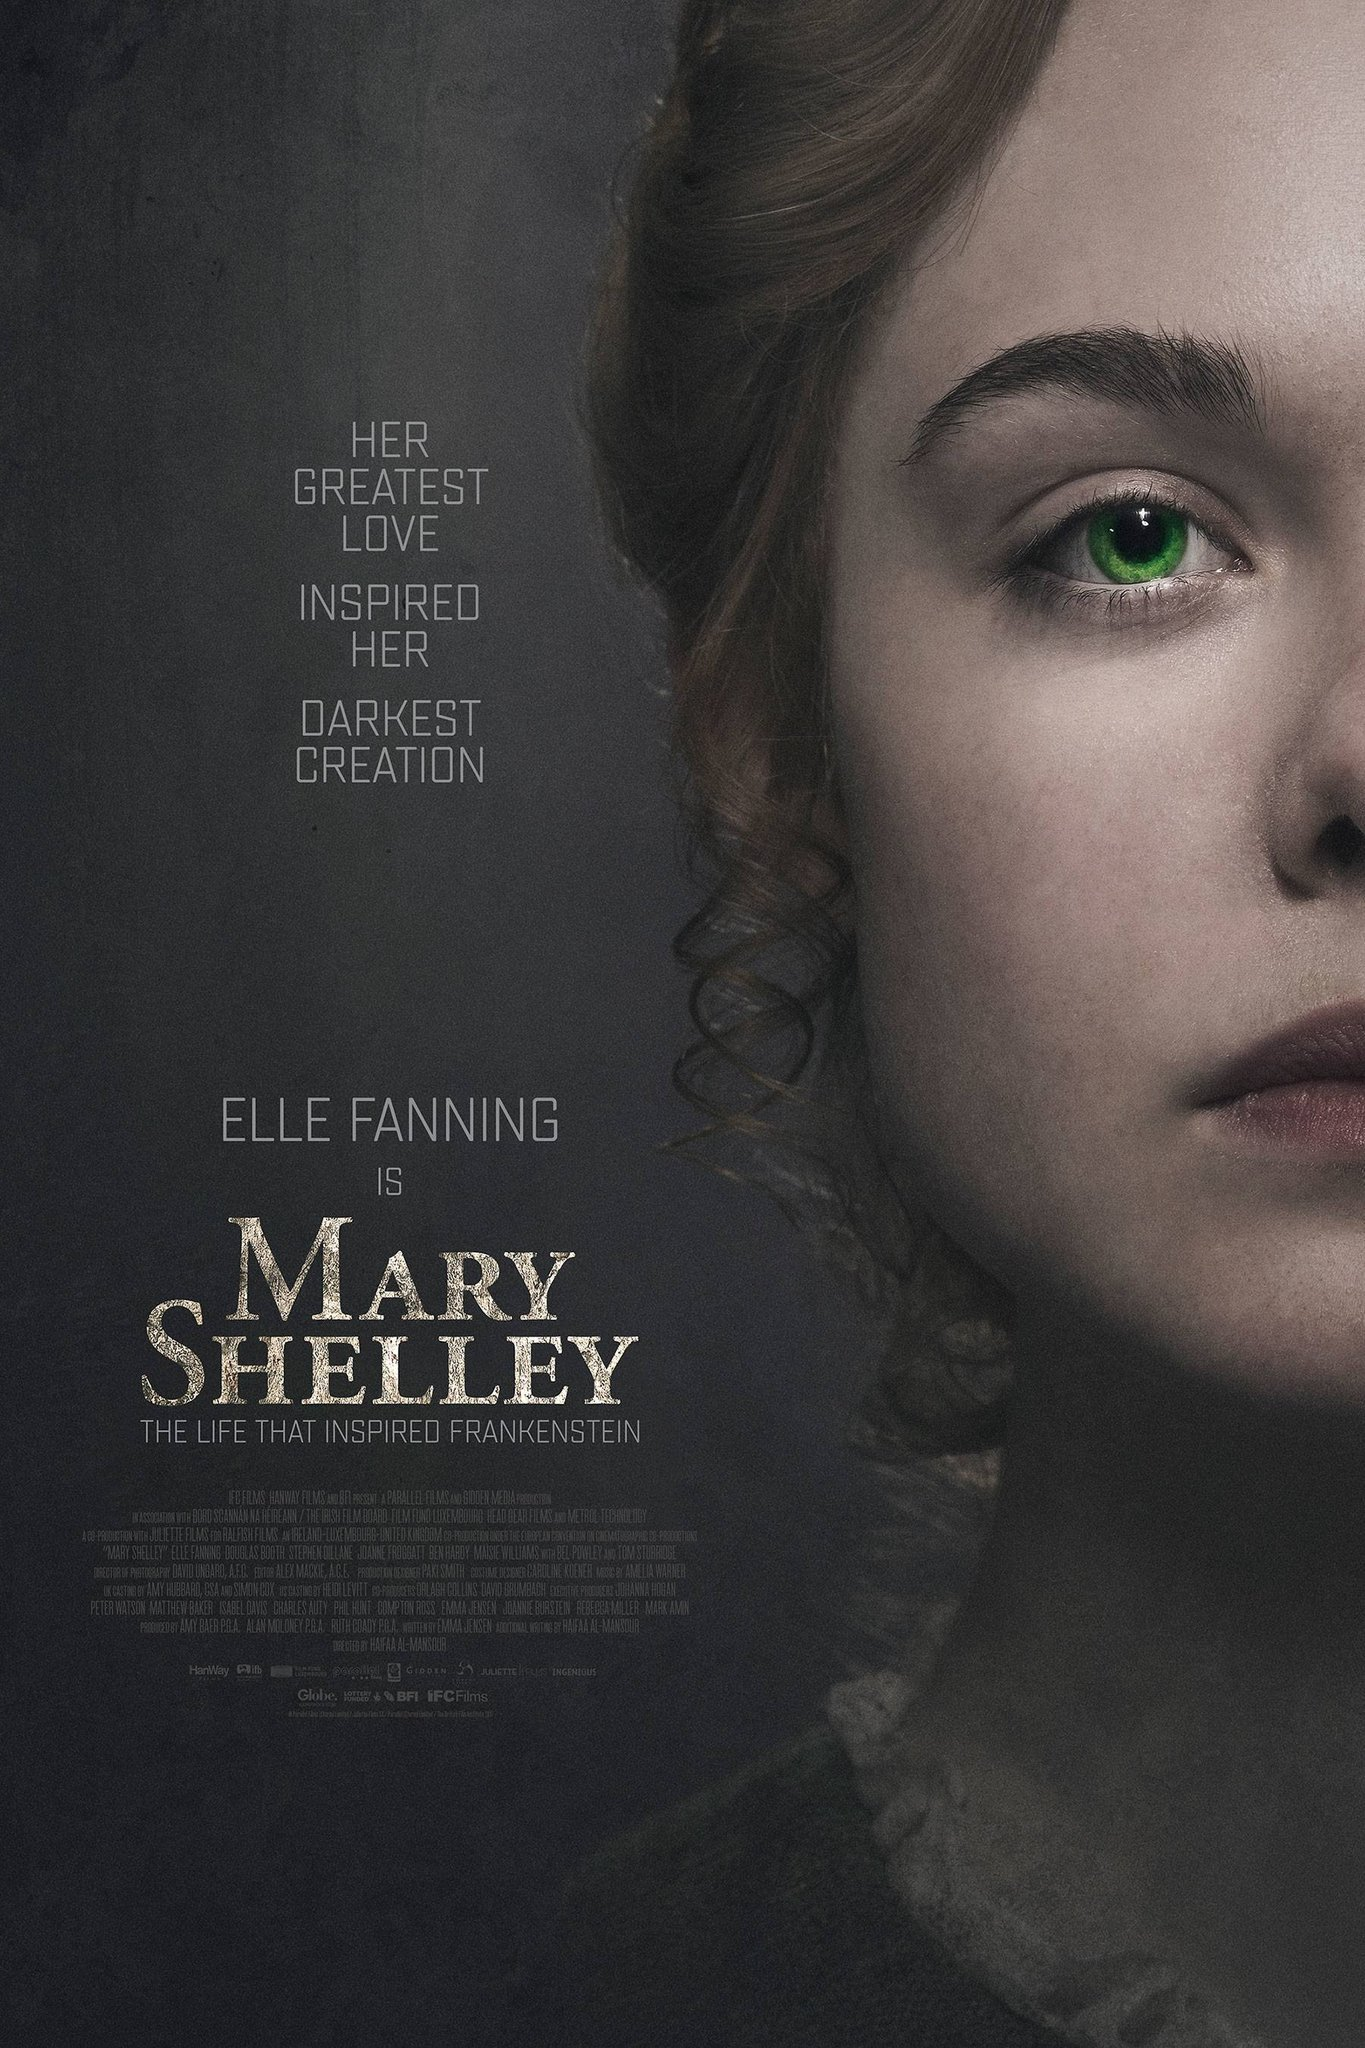 LA ÚLTIMA PELÍCULA QUE HAS VISTO... ¡EN EL CINE! - Página 3 Mary-Shelley-Movie-Poster